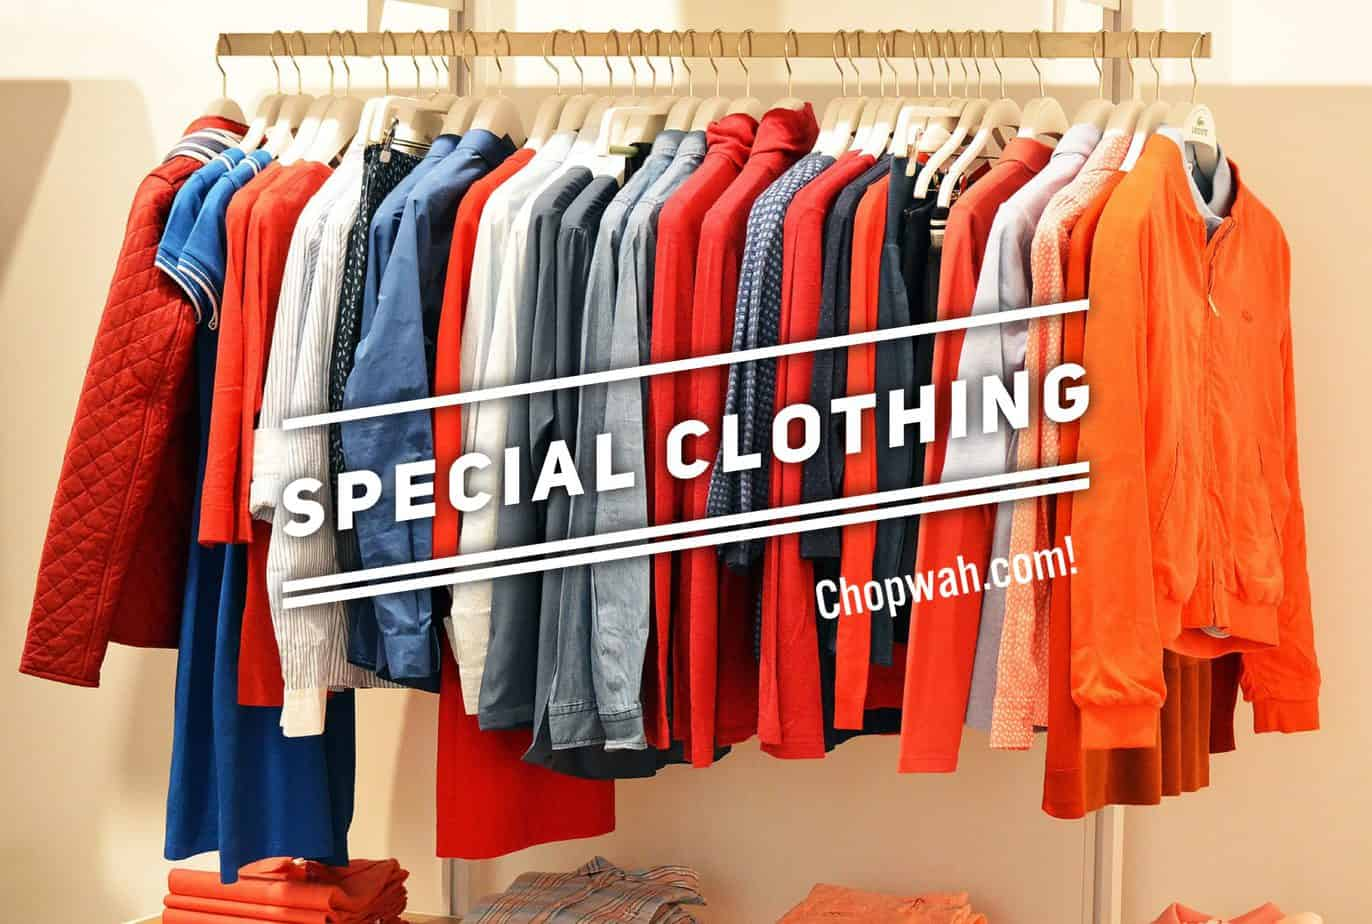 Chopwa - Special clothing